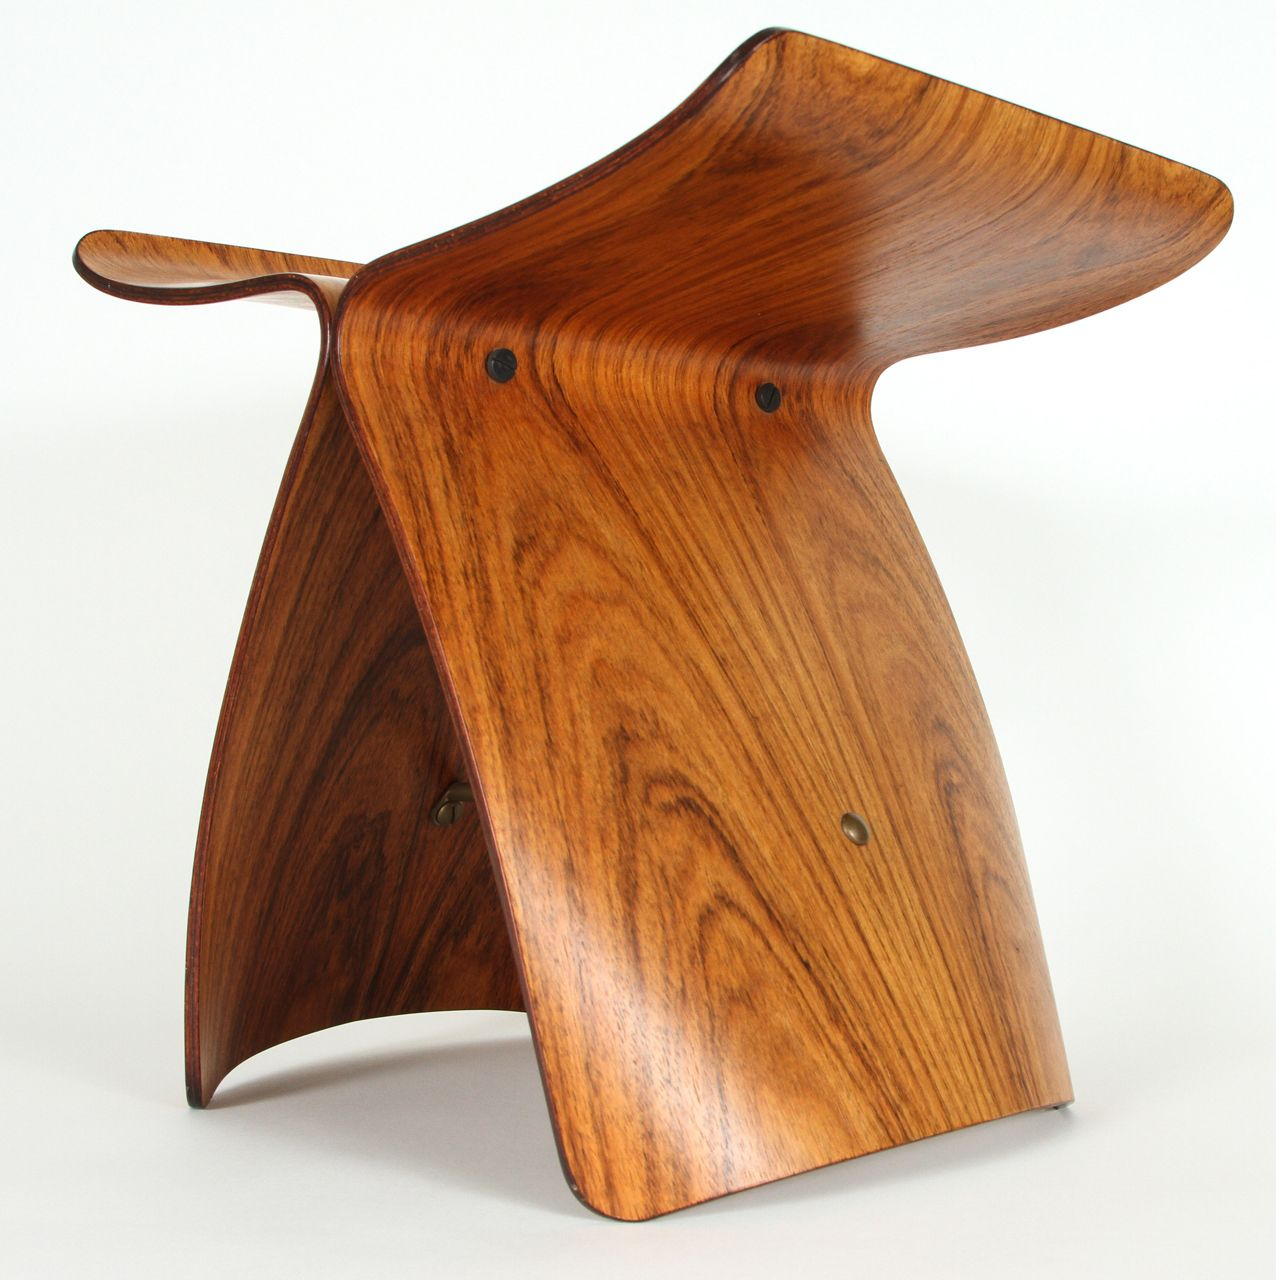 Butterfly chair sori yanagi - For Sale On A Beautiful Light Rosewood Butterfly Stool Retaining The Original Tendo Sticker Wonderful Natural Patina To The Brass Rod Stretcher And